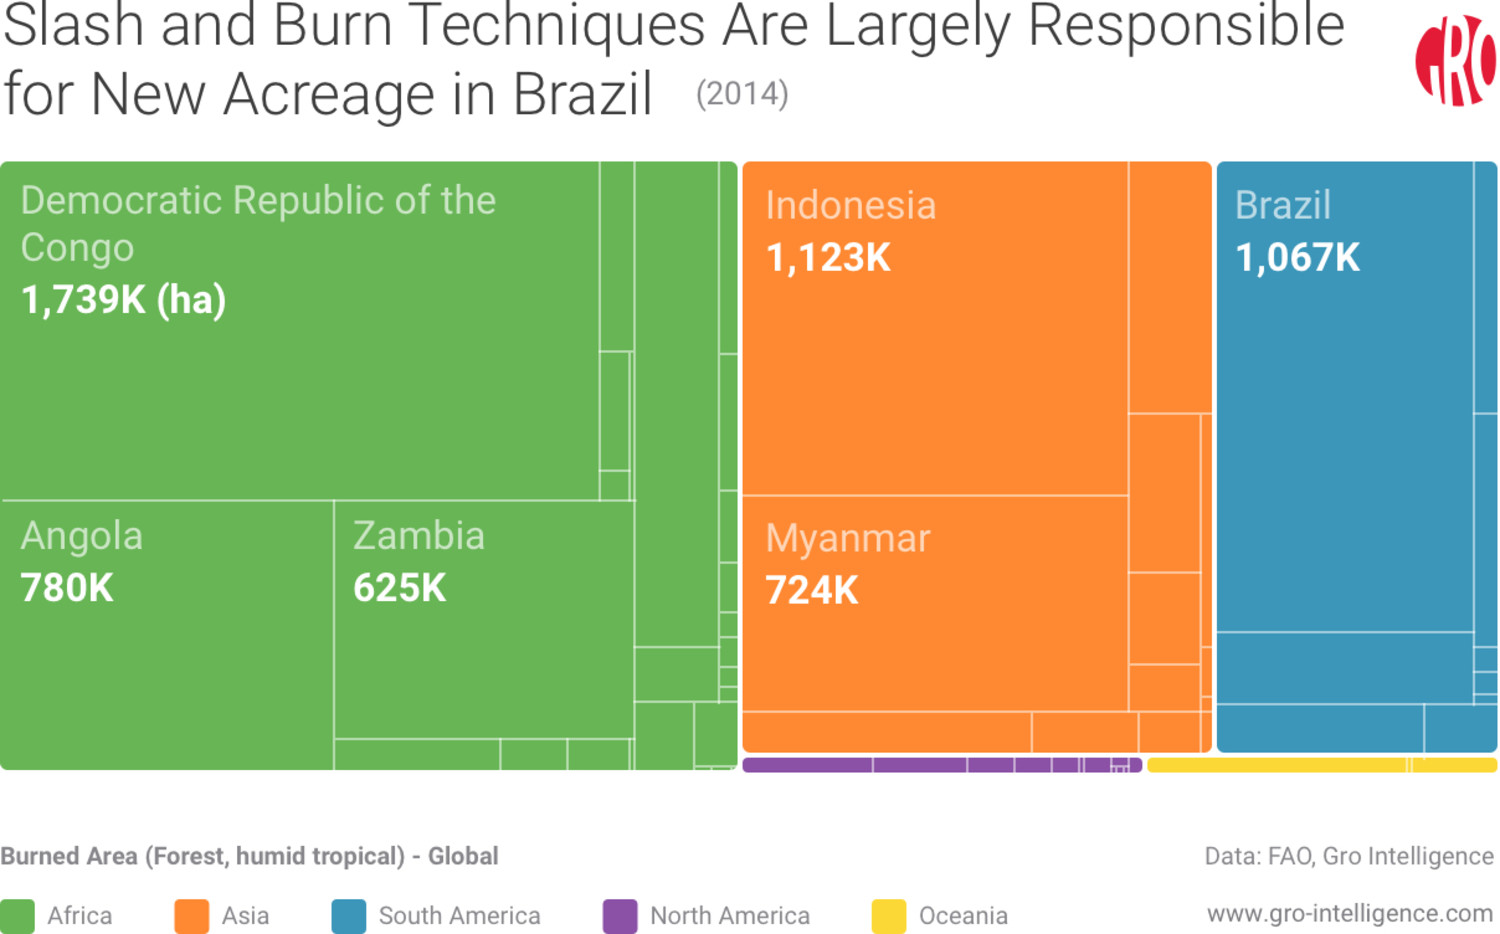 Slash and Burn Techniques Are Largely Responsible For New Acreage in Brazil